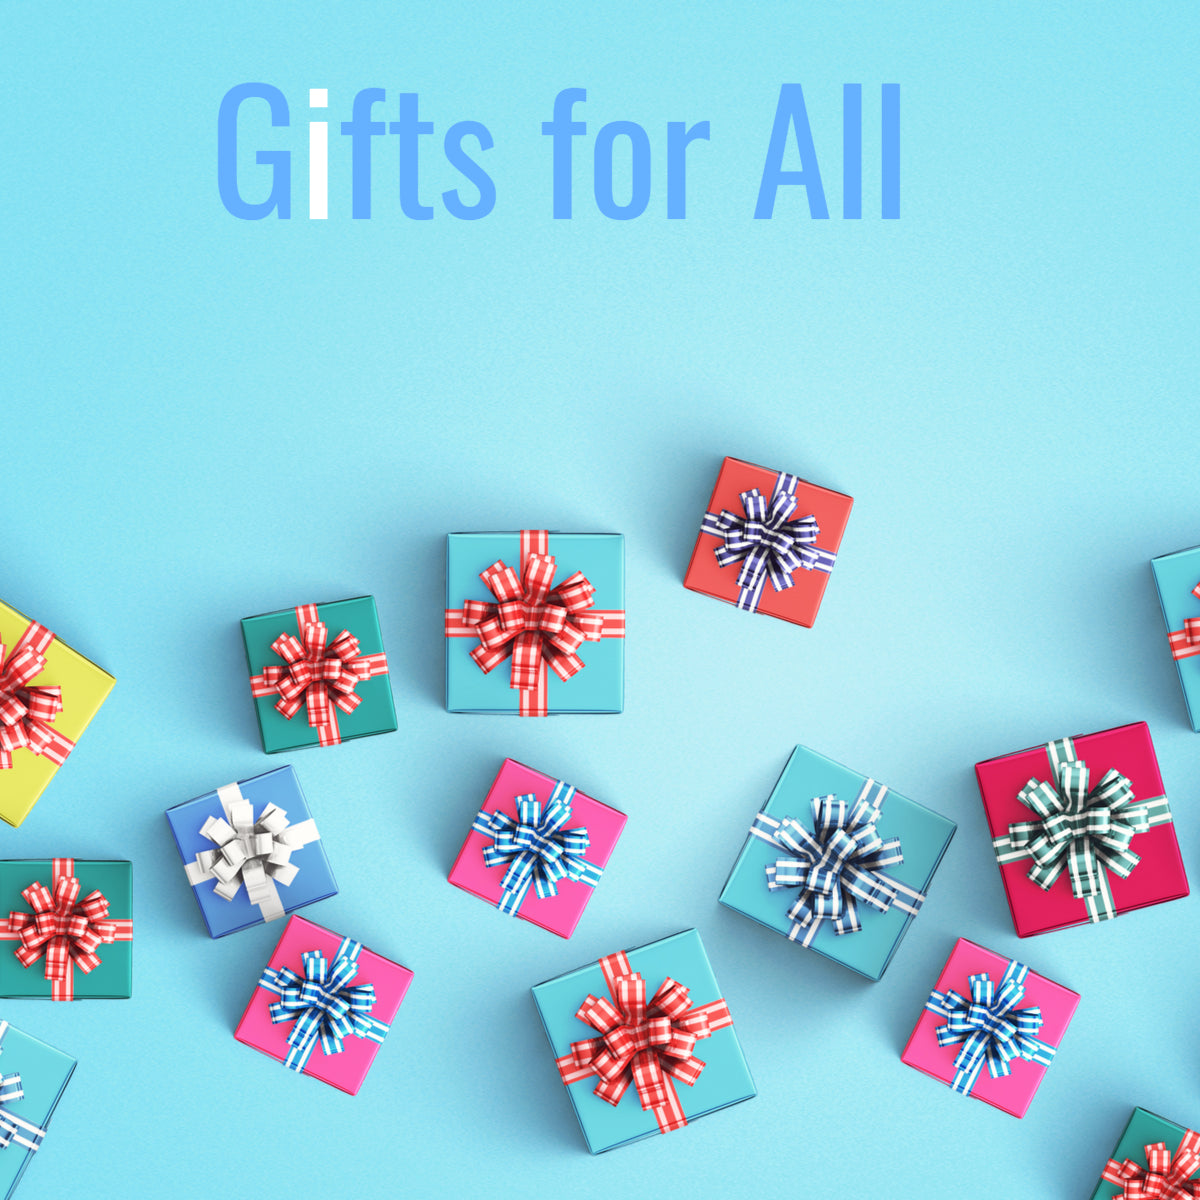 Gifts for All